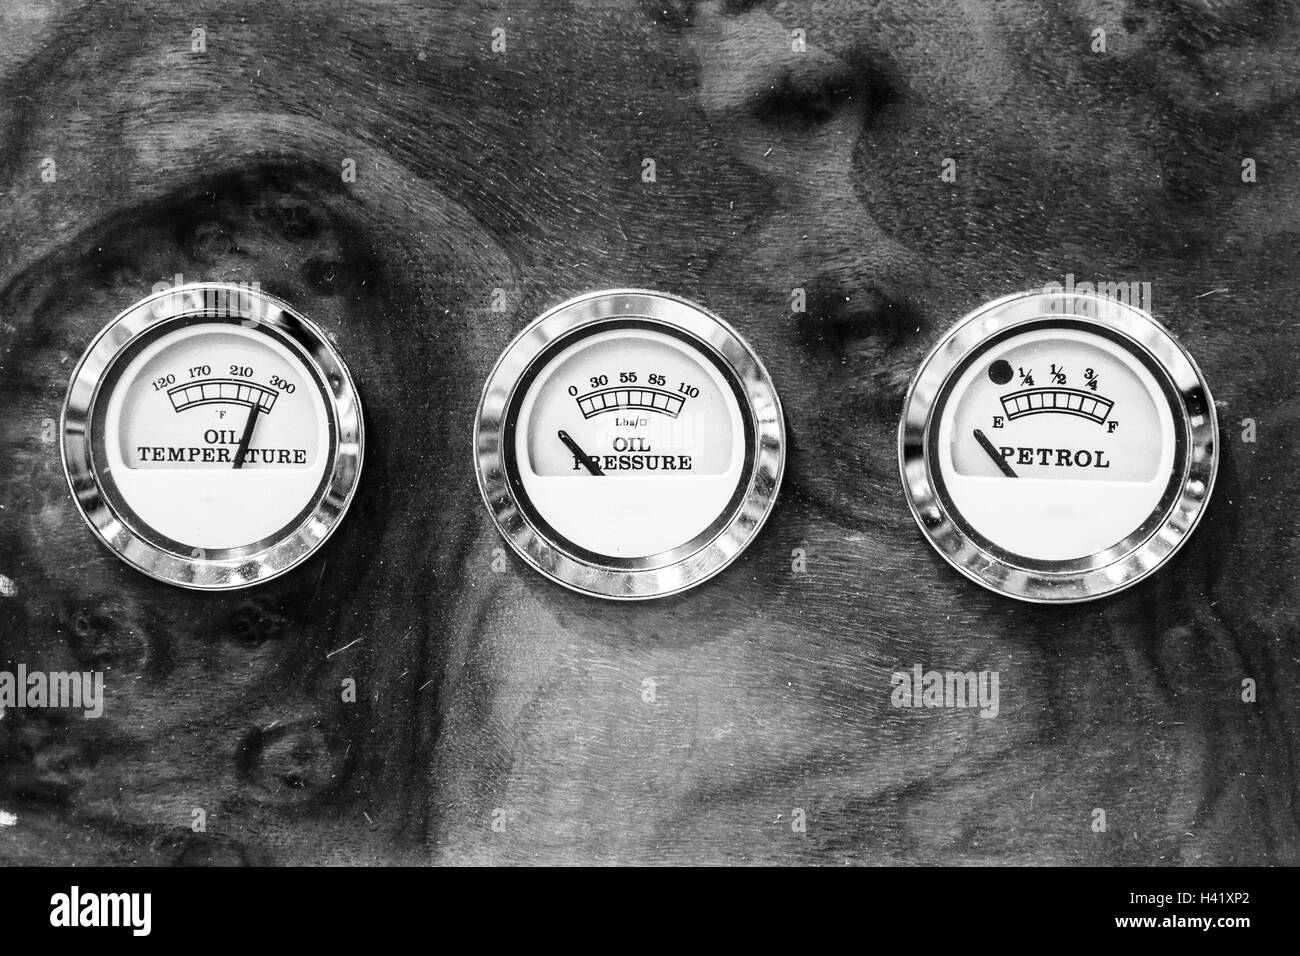 Oil temperature, oil pressure and oil level indicators on the briar dashboard of a vintage car. - Stock Image